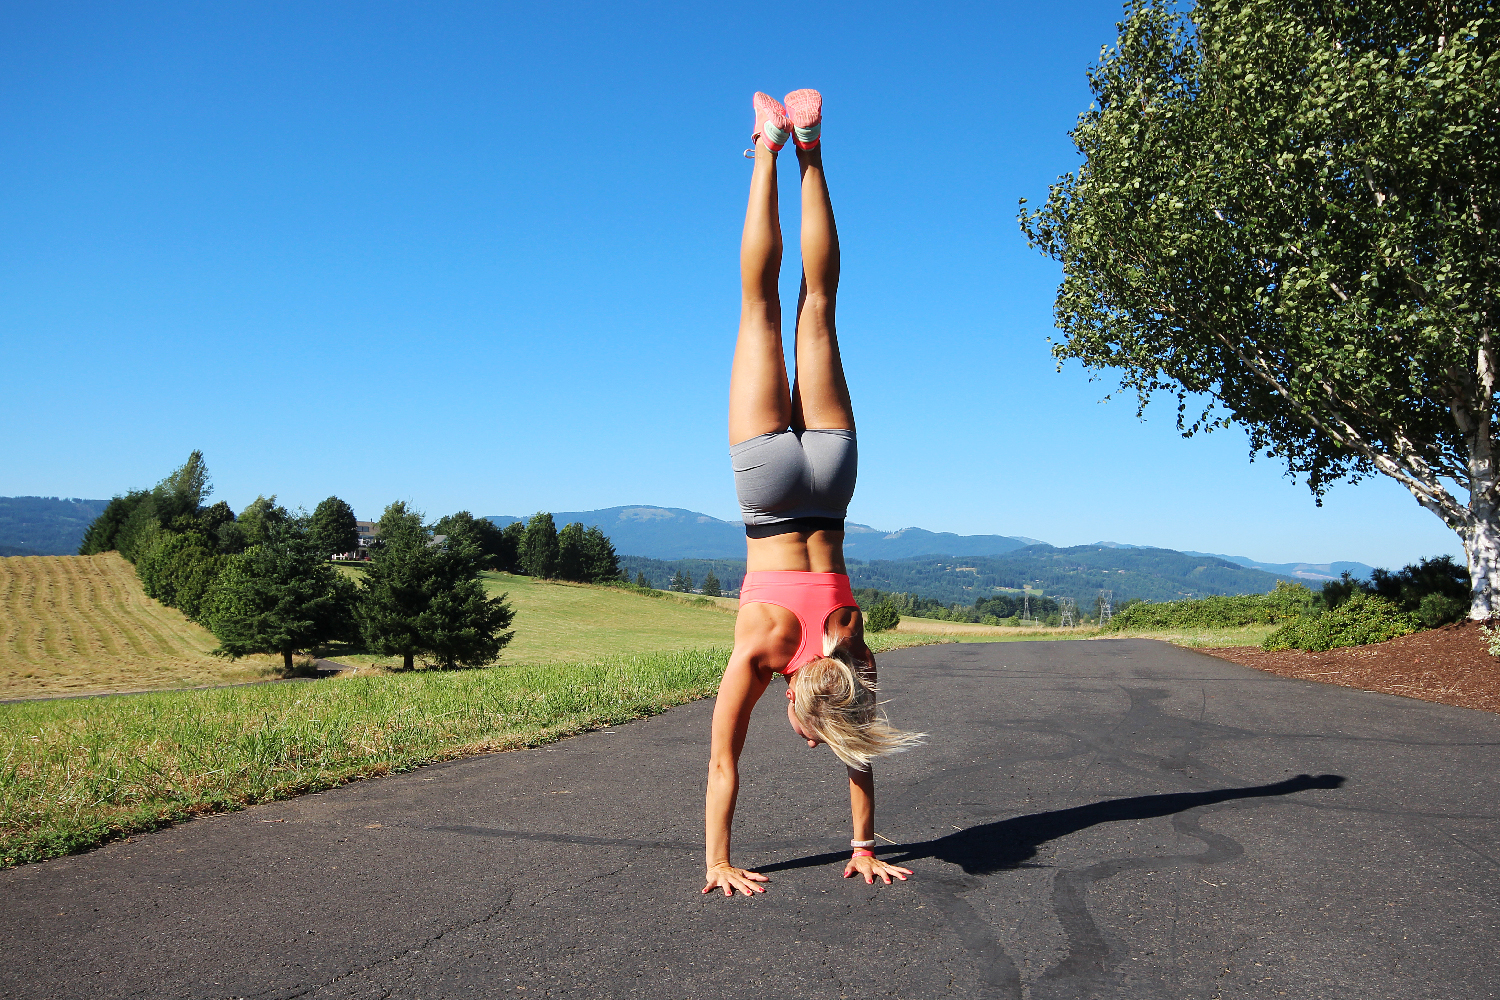 Cartwheels and Handstands